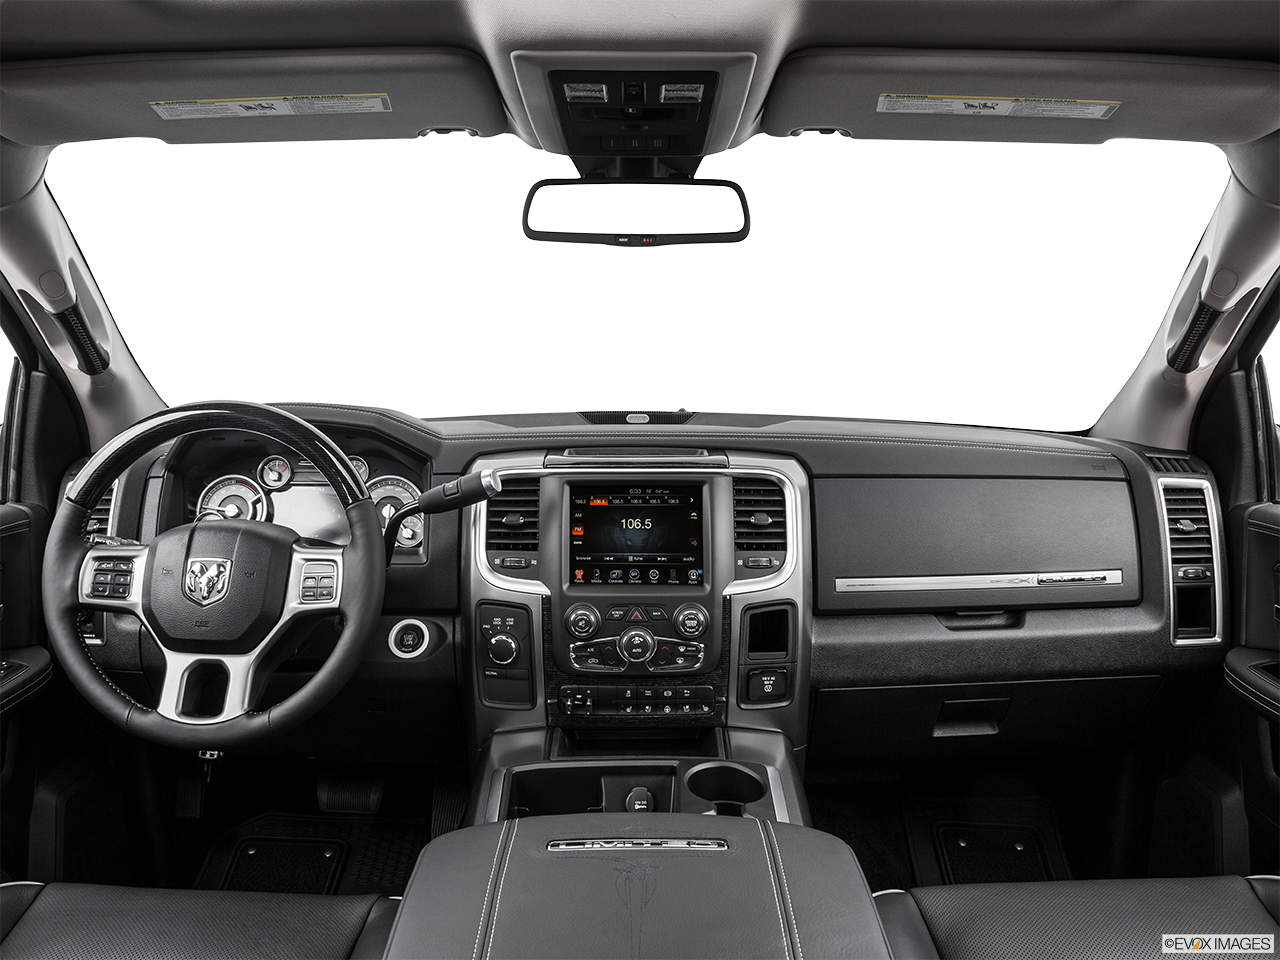 Interior View Of 2015 RAM 3500 in Huntington Beach